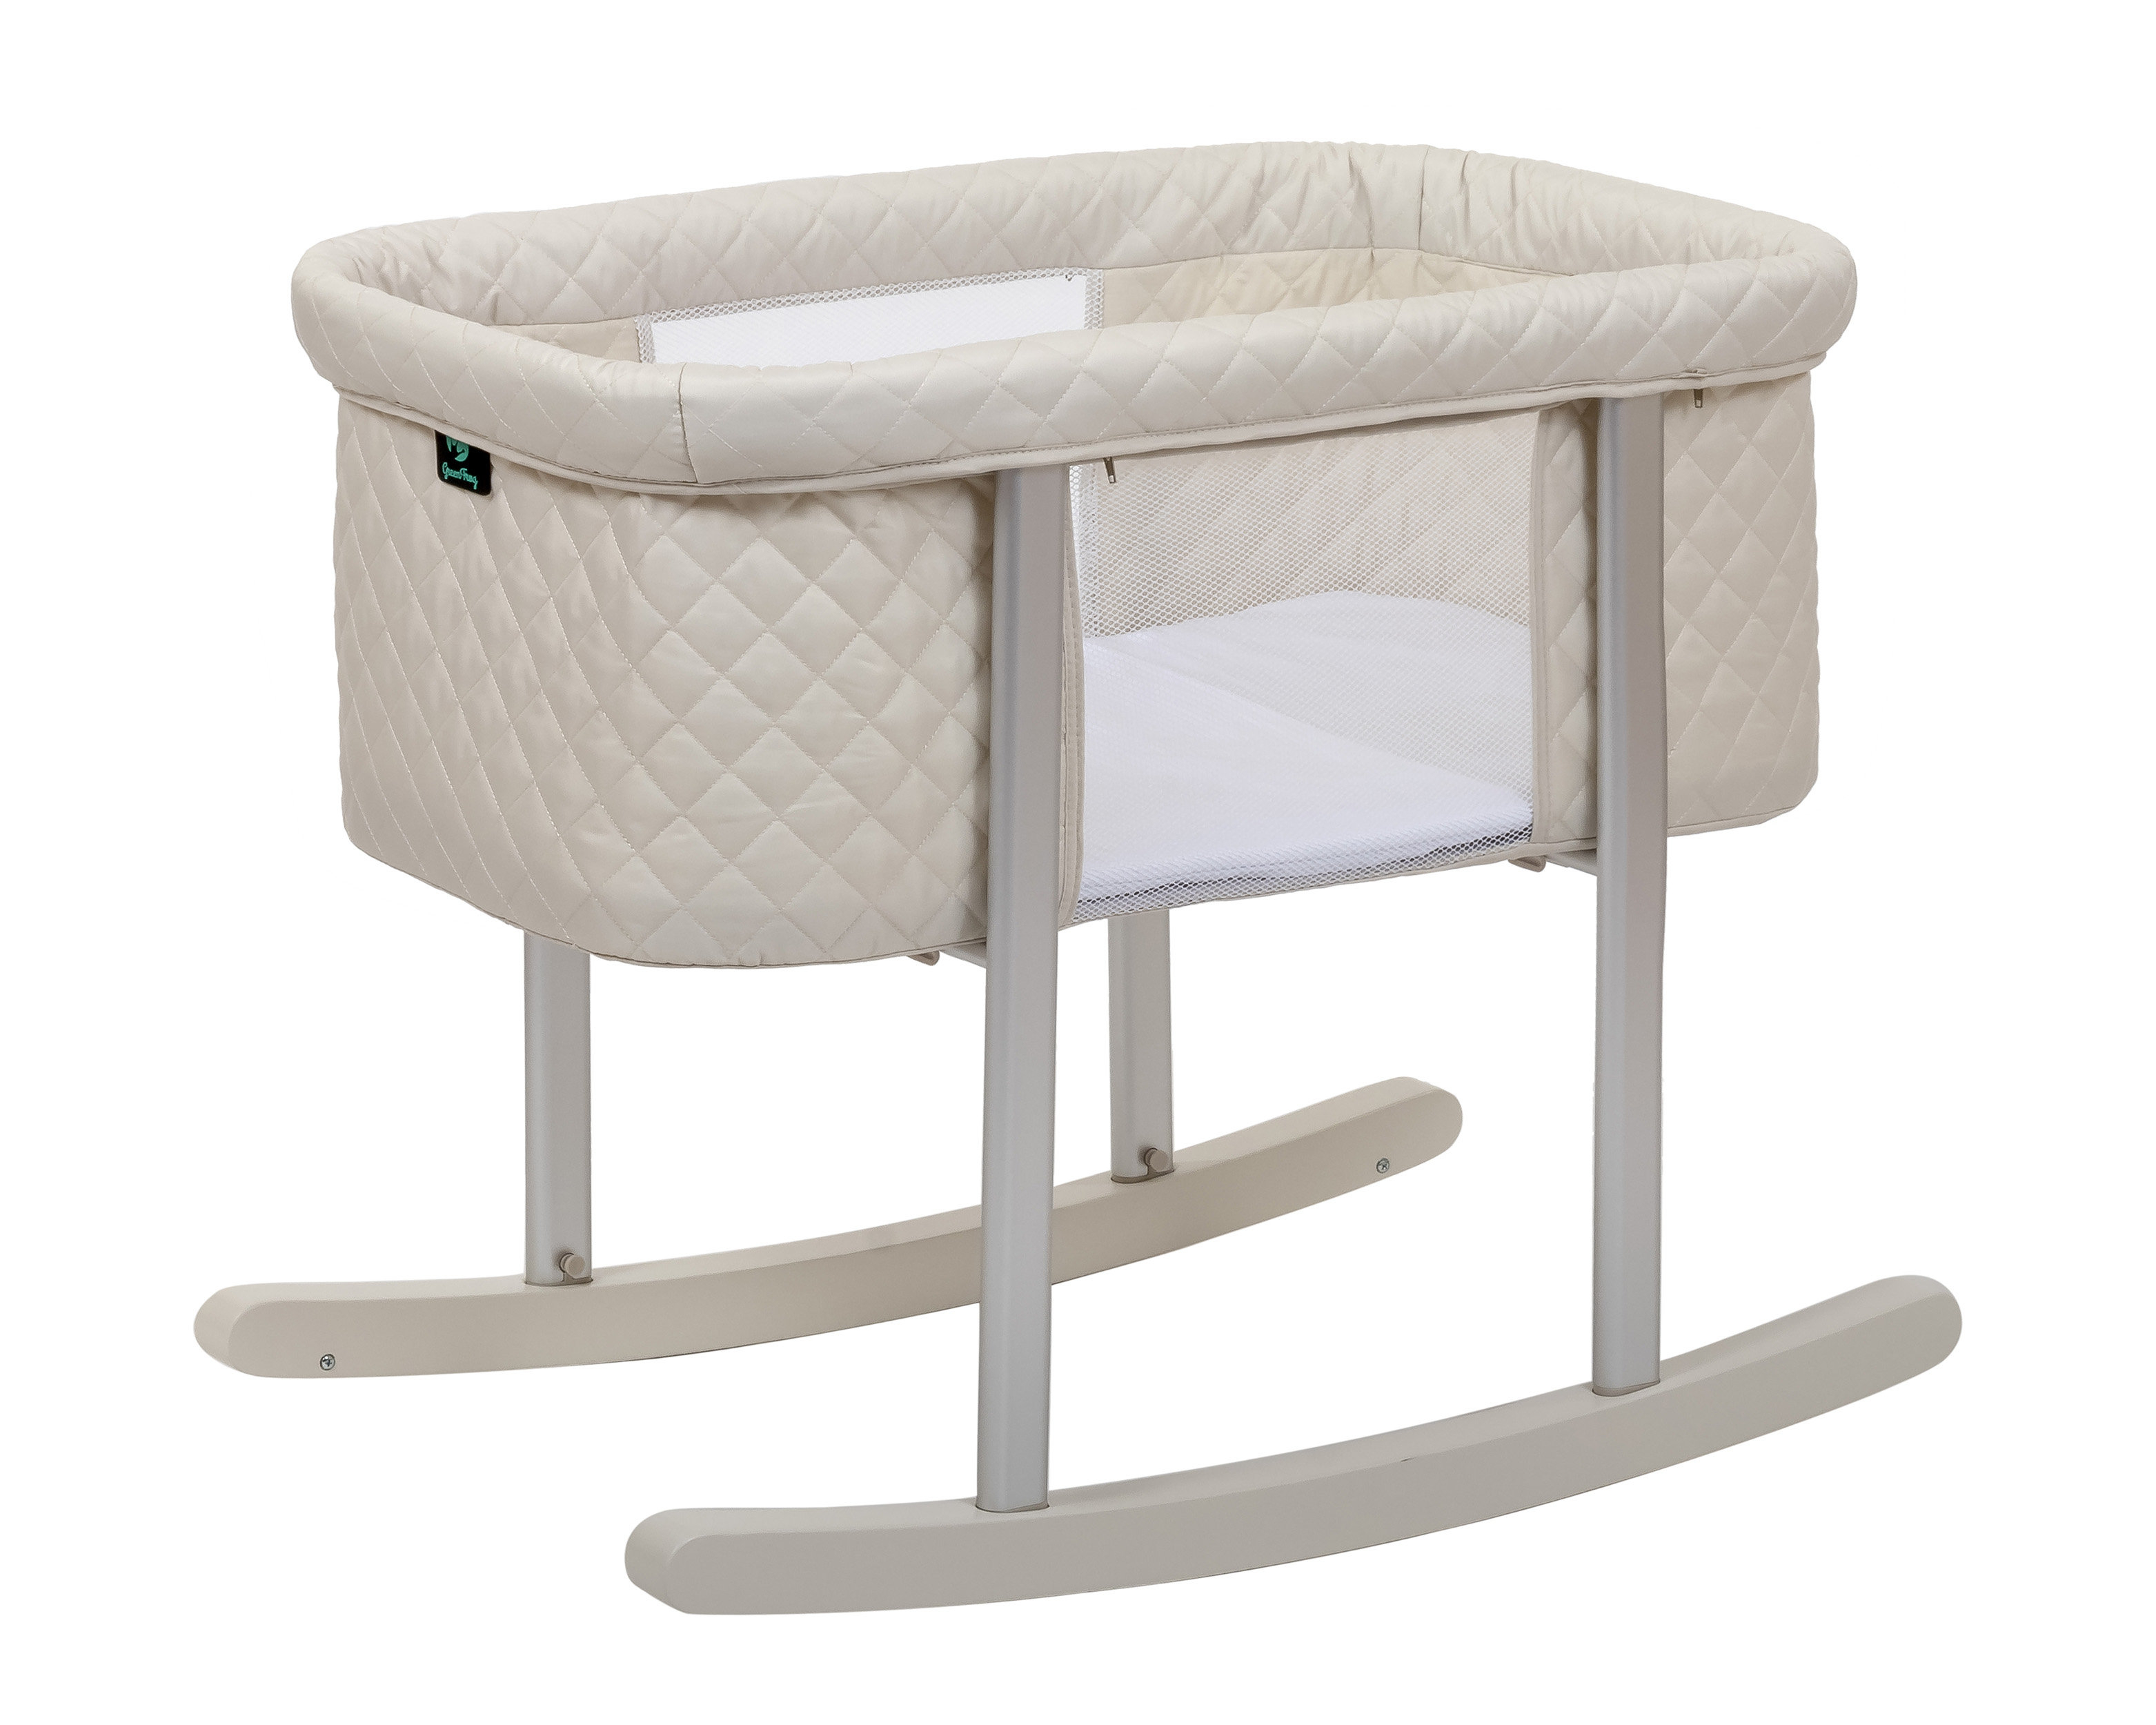 Mack & Milo Gaetan Diamond Baby Bassinet | Wayfair Pertaining To Bailey Mist Track Arm Skirted Swivel Gliders (Image 18 of 25)